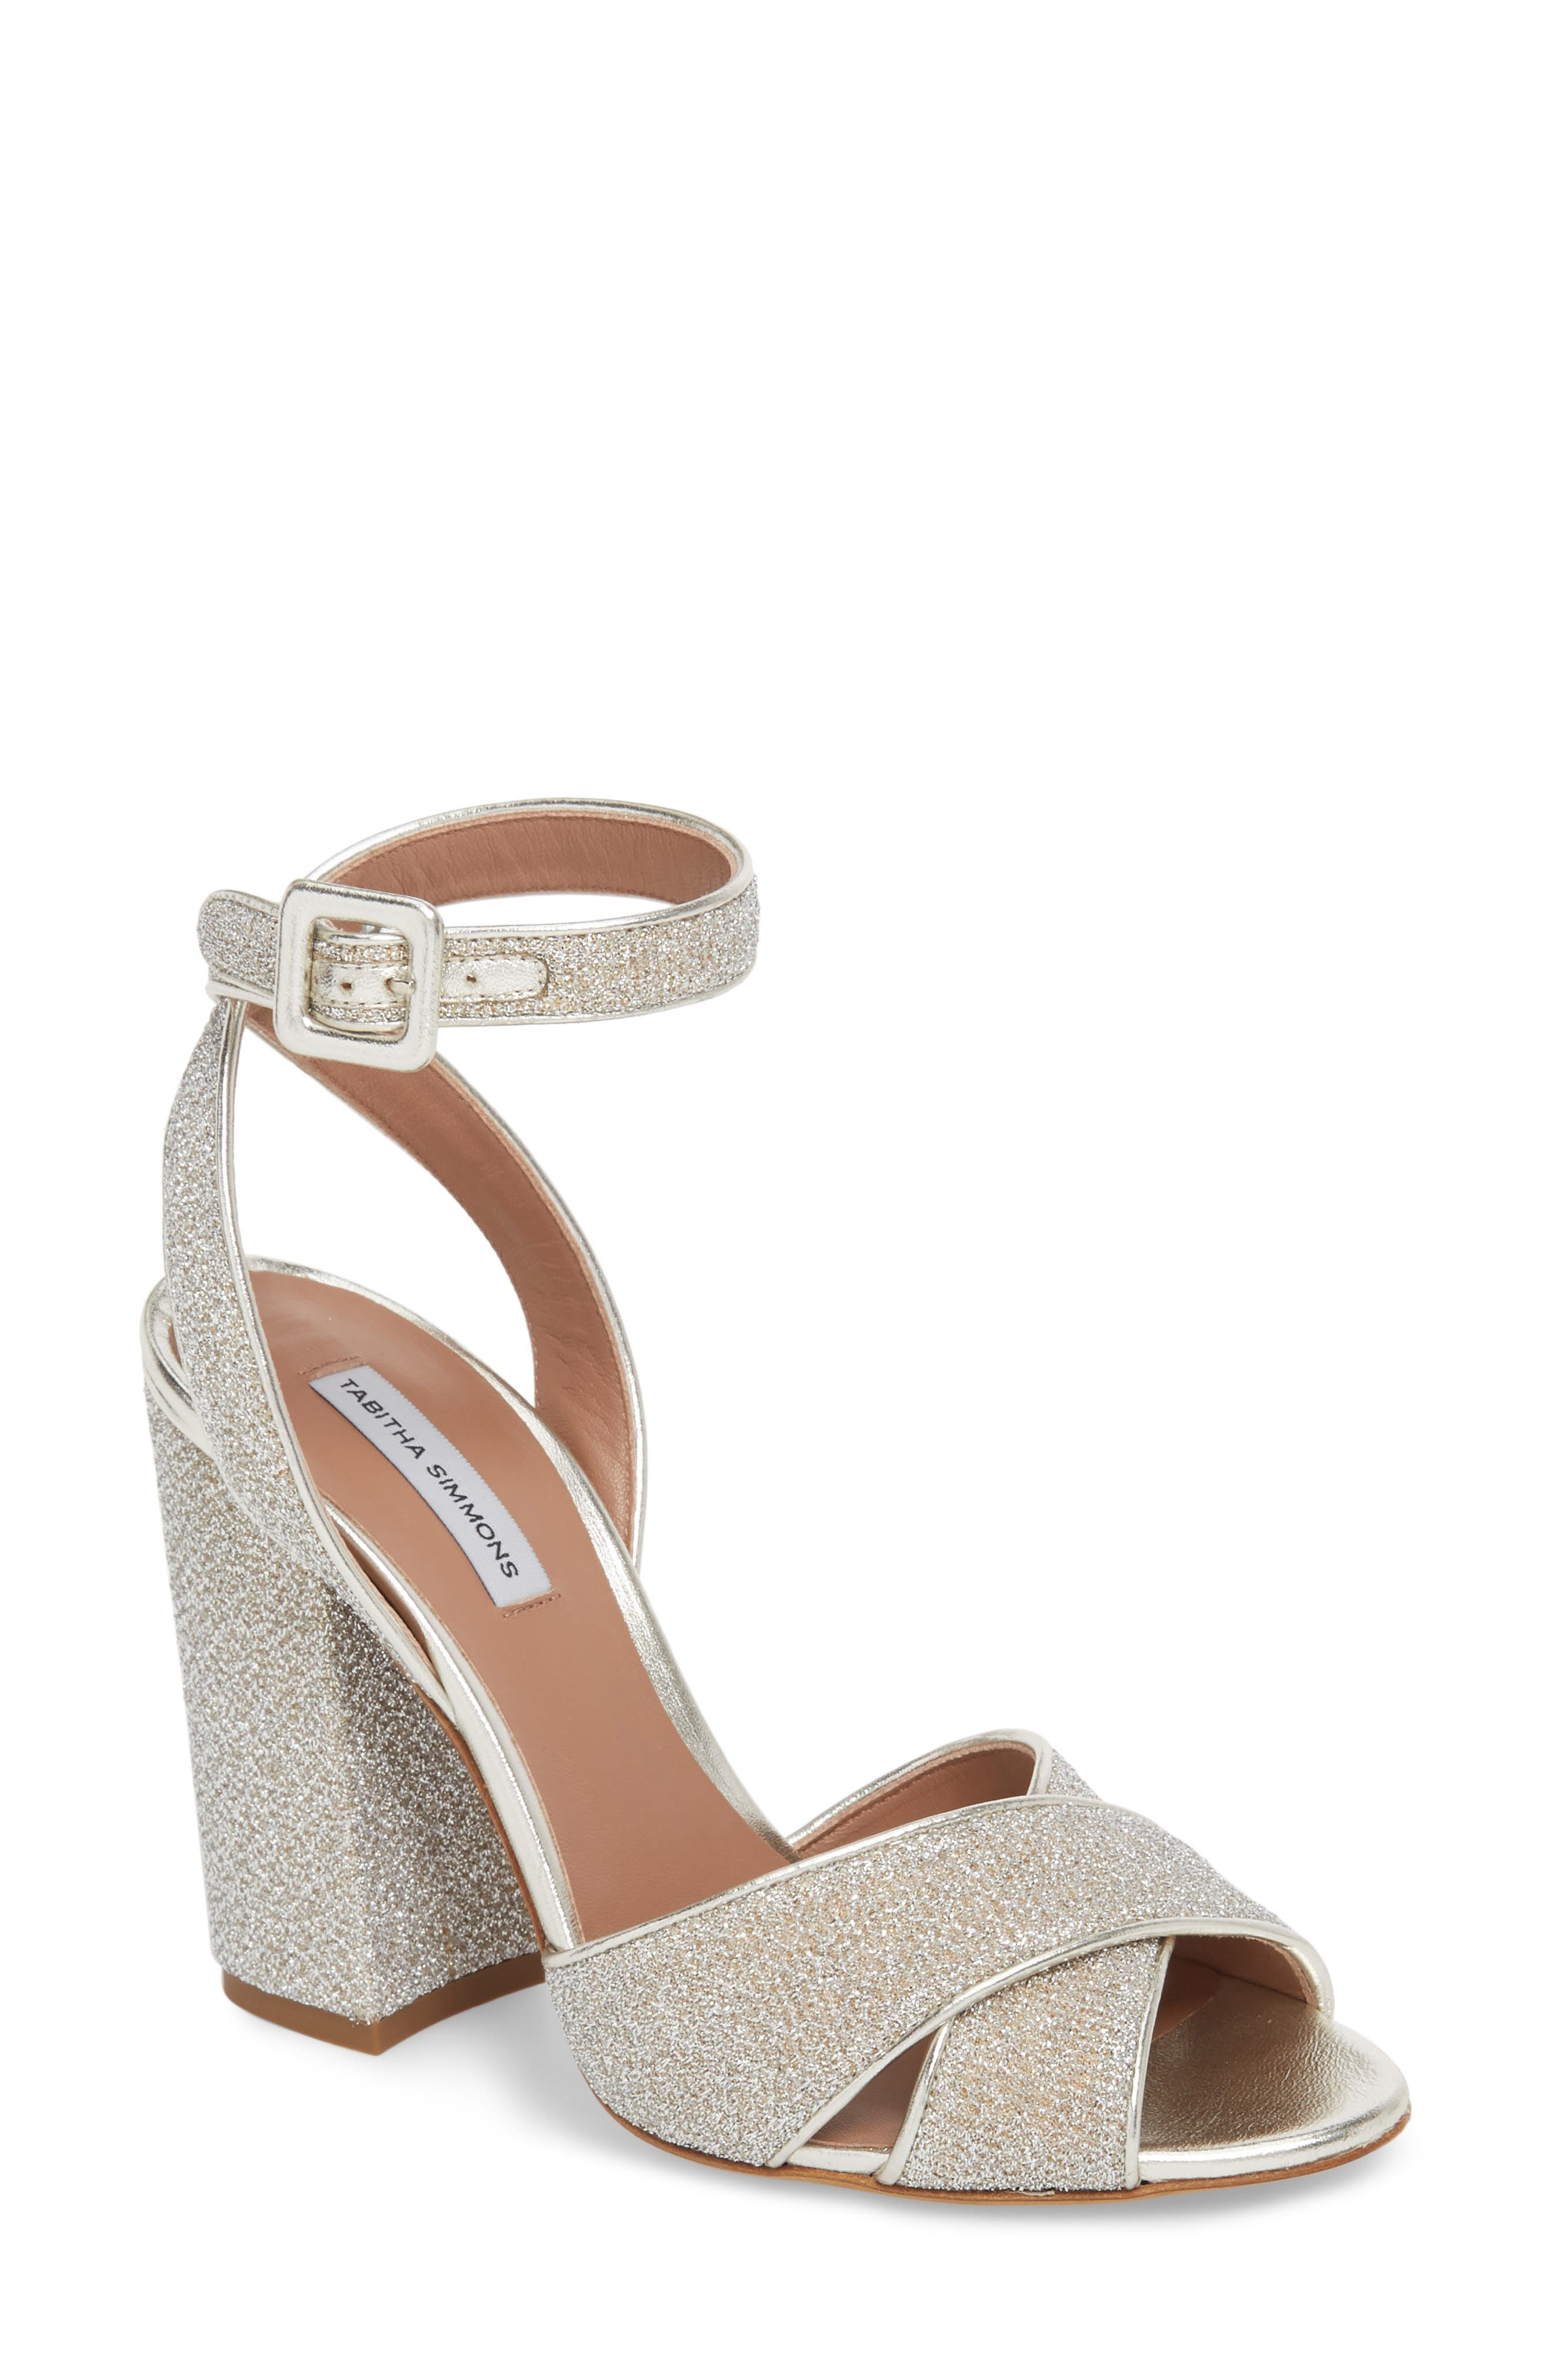 Tabitha Simmons Connie Ankle Strap Sandal (Women)